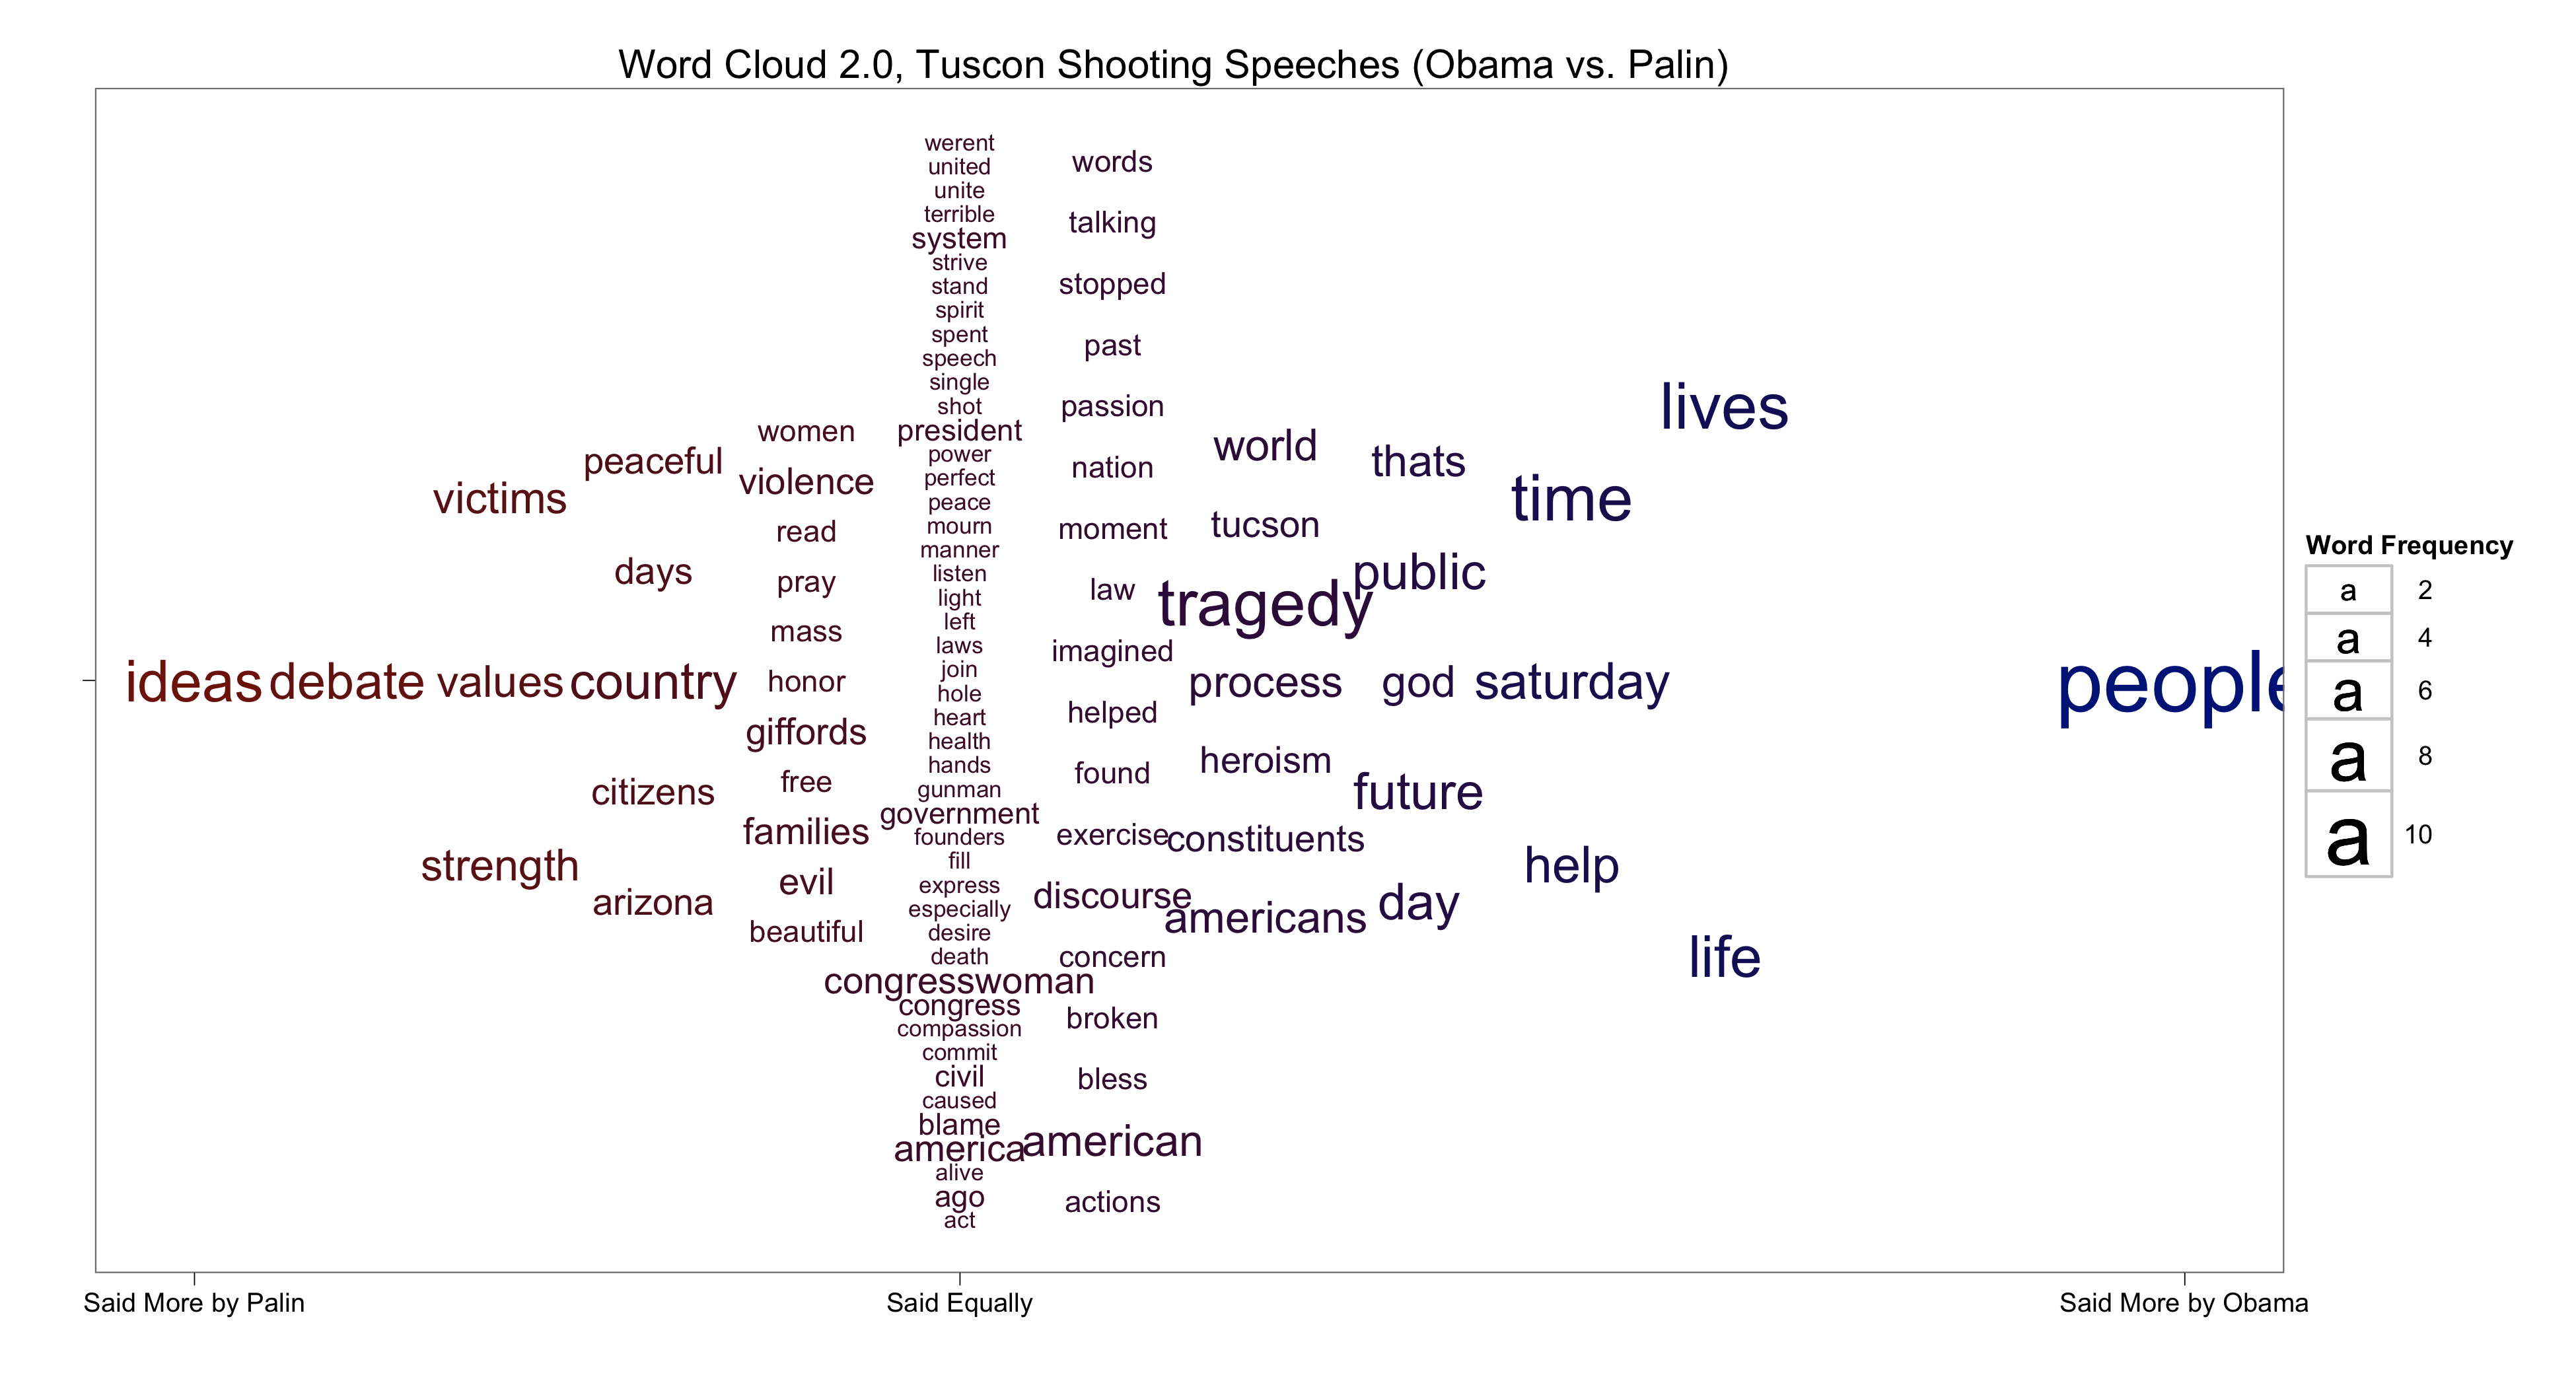 Word Cloud 2.0, Tucson Shooting Speeches (Obama vs. Palin)